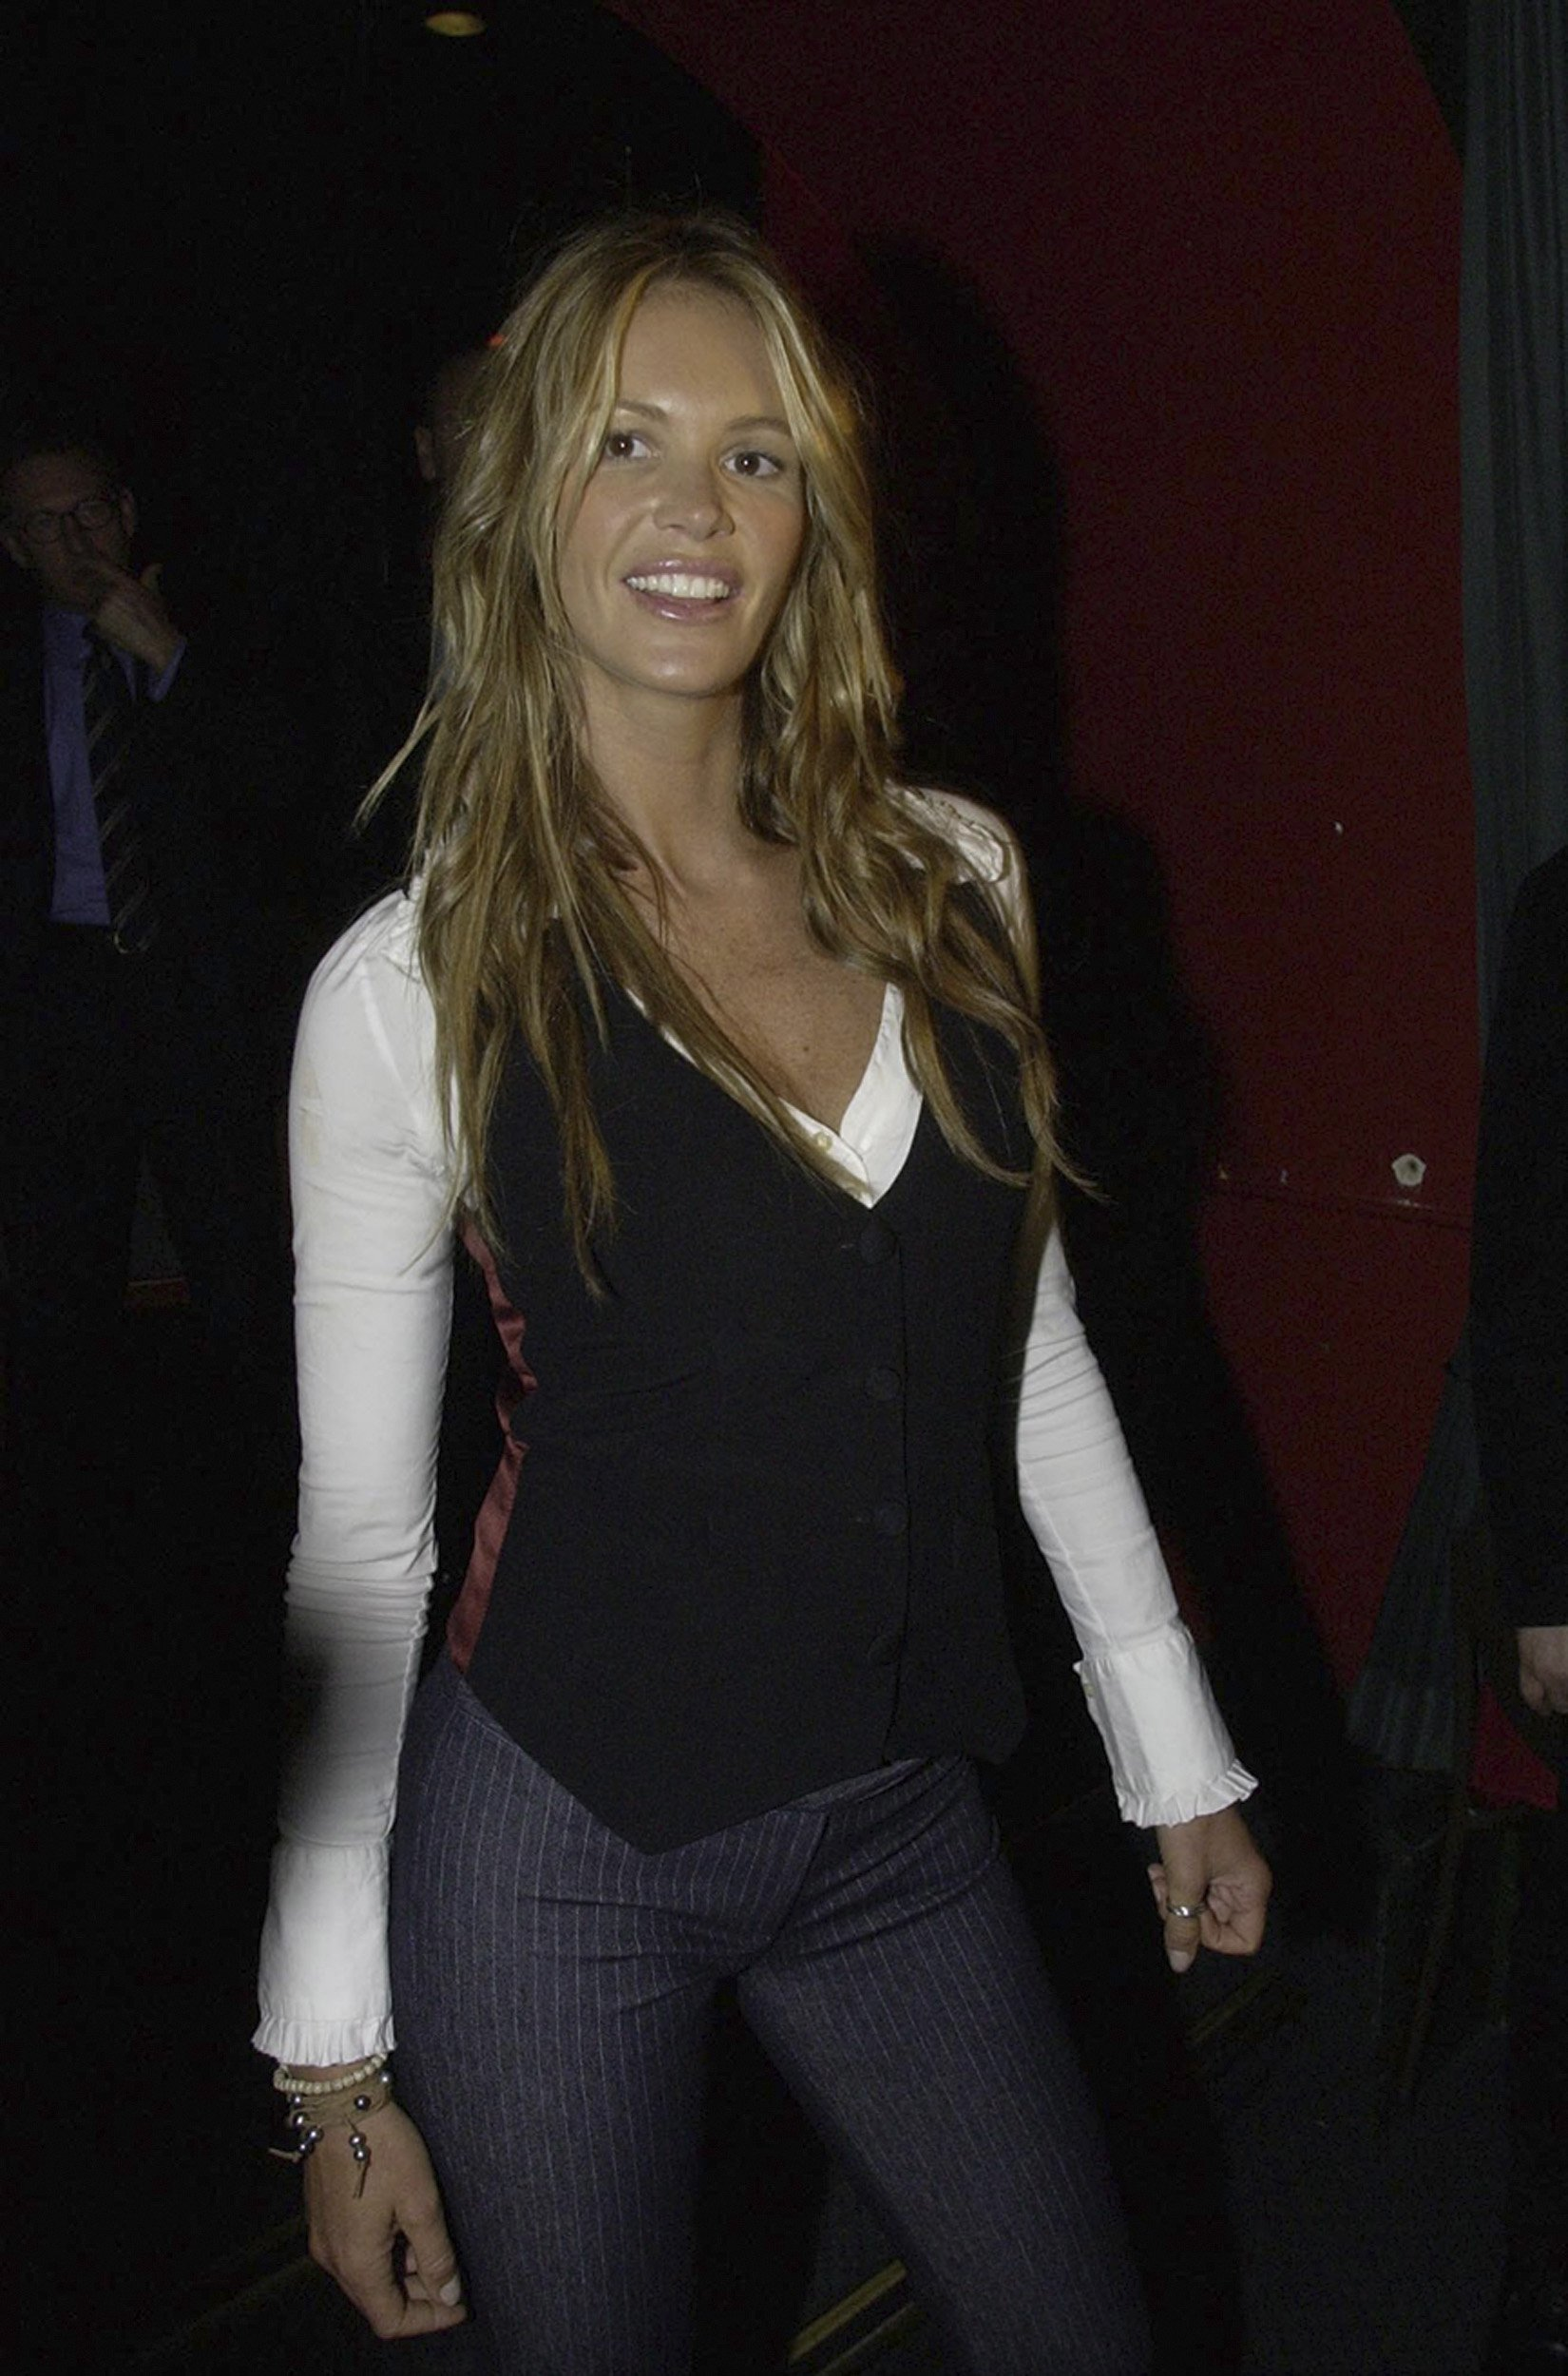 Elle Macpherson at a gentleman's club in Sydney after the showing of her lingerie fashion show, Elle Macpherson Intimates. | Source: Getty Images.